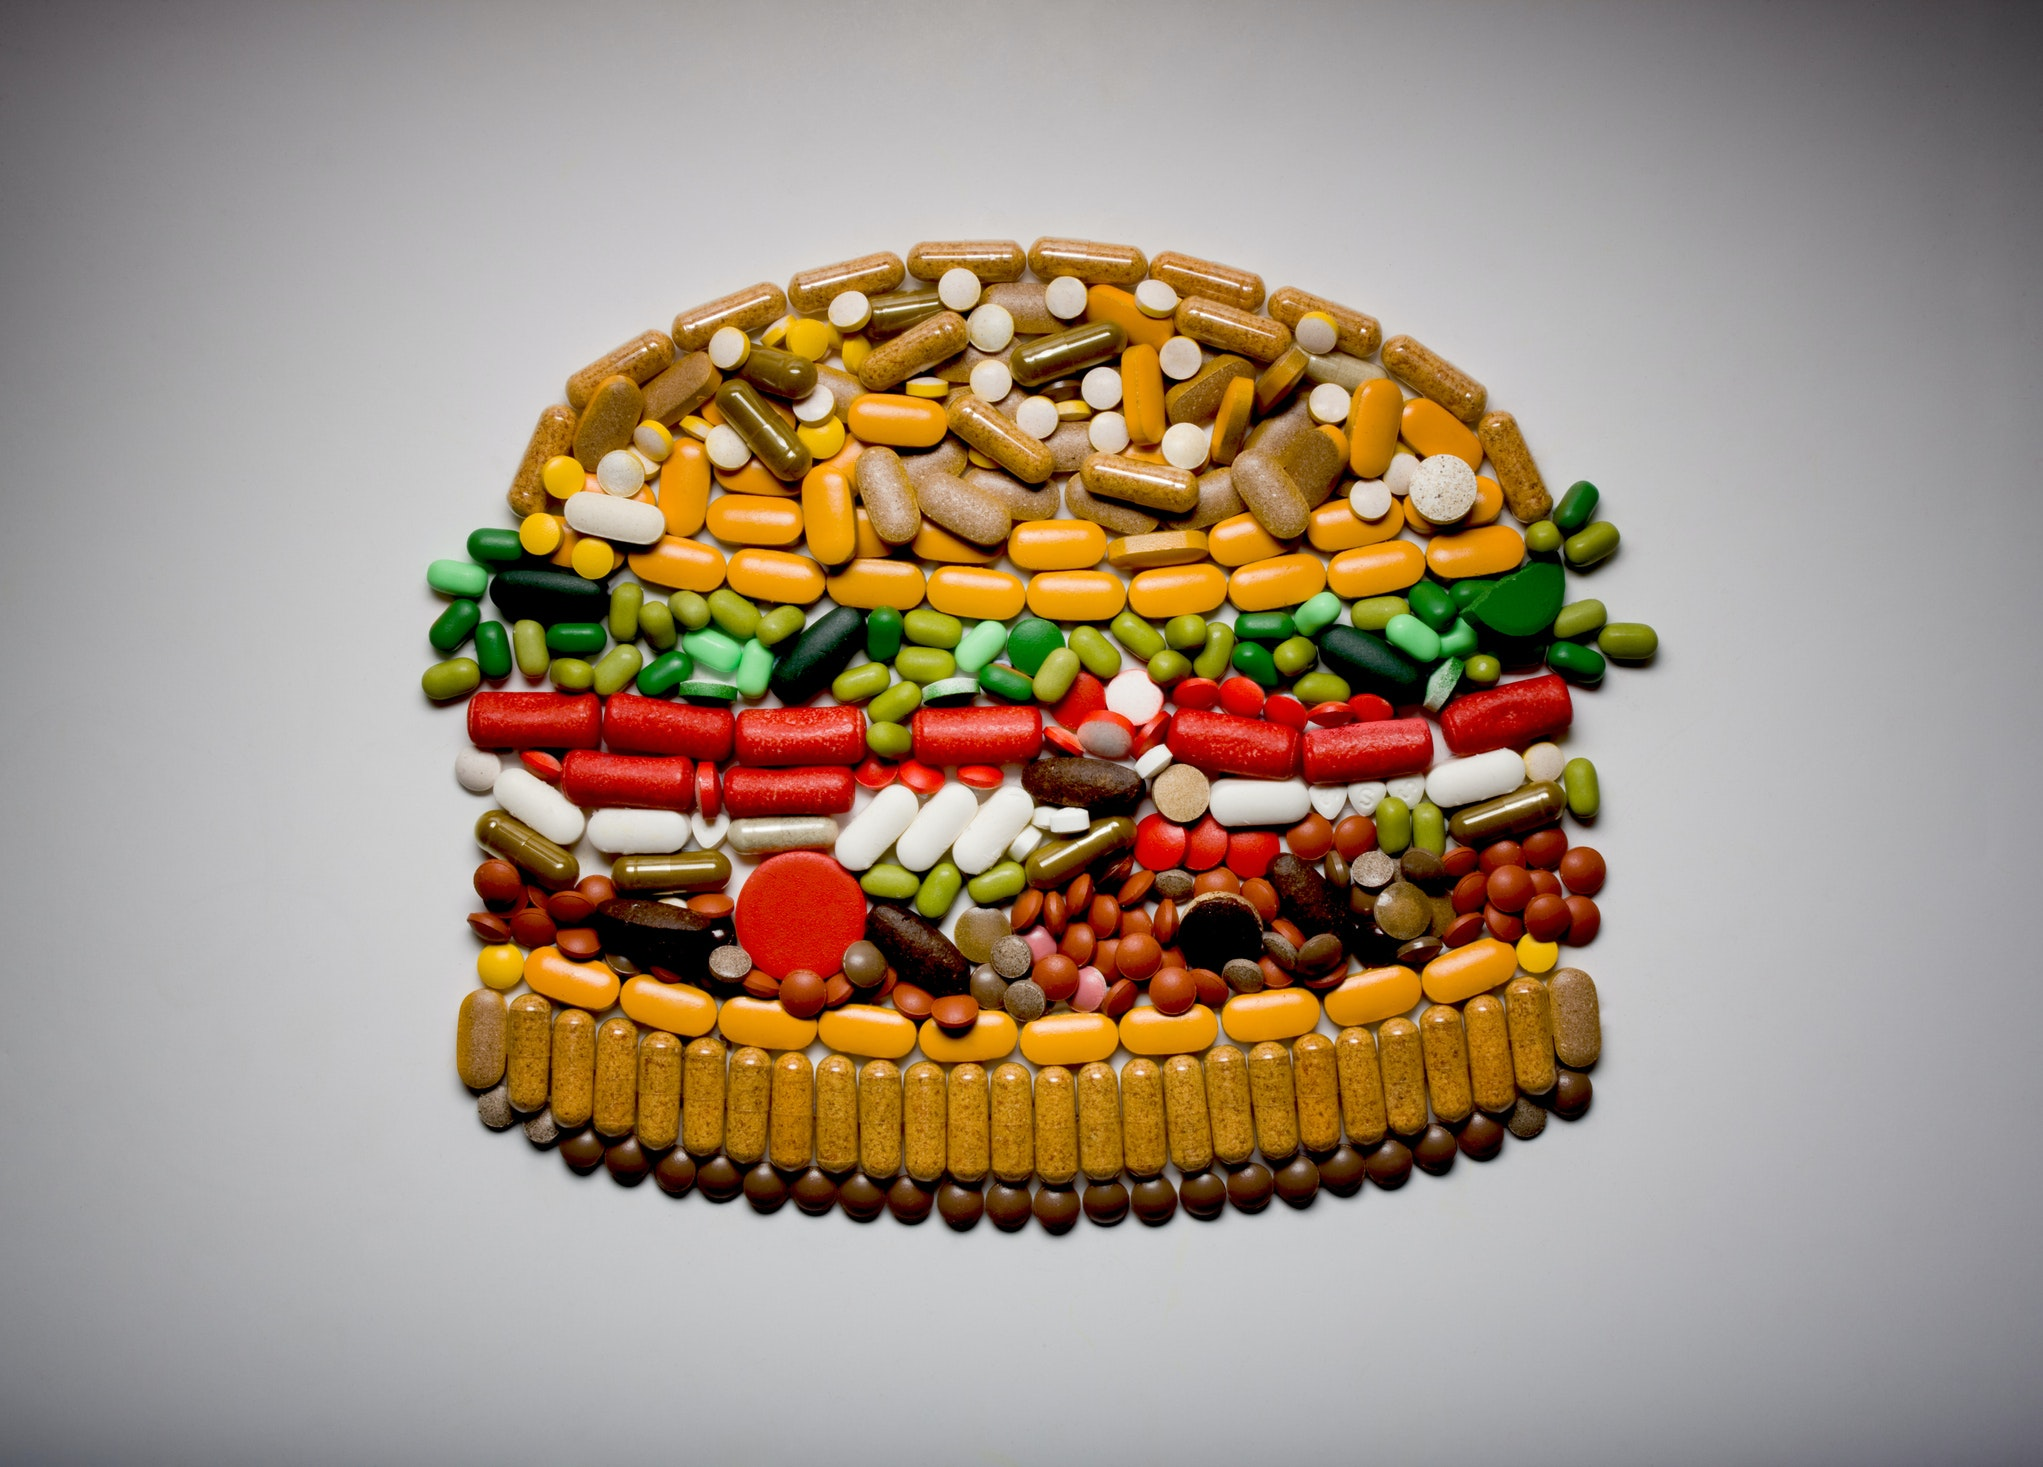 A collage of pills in the shape of a hamburger.